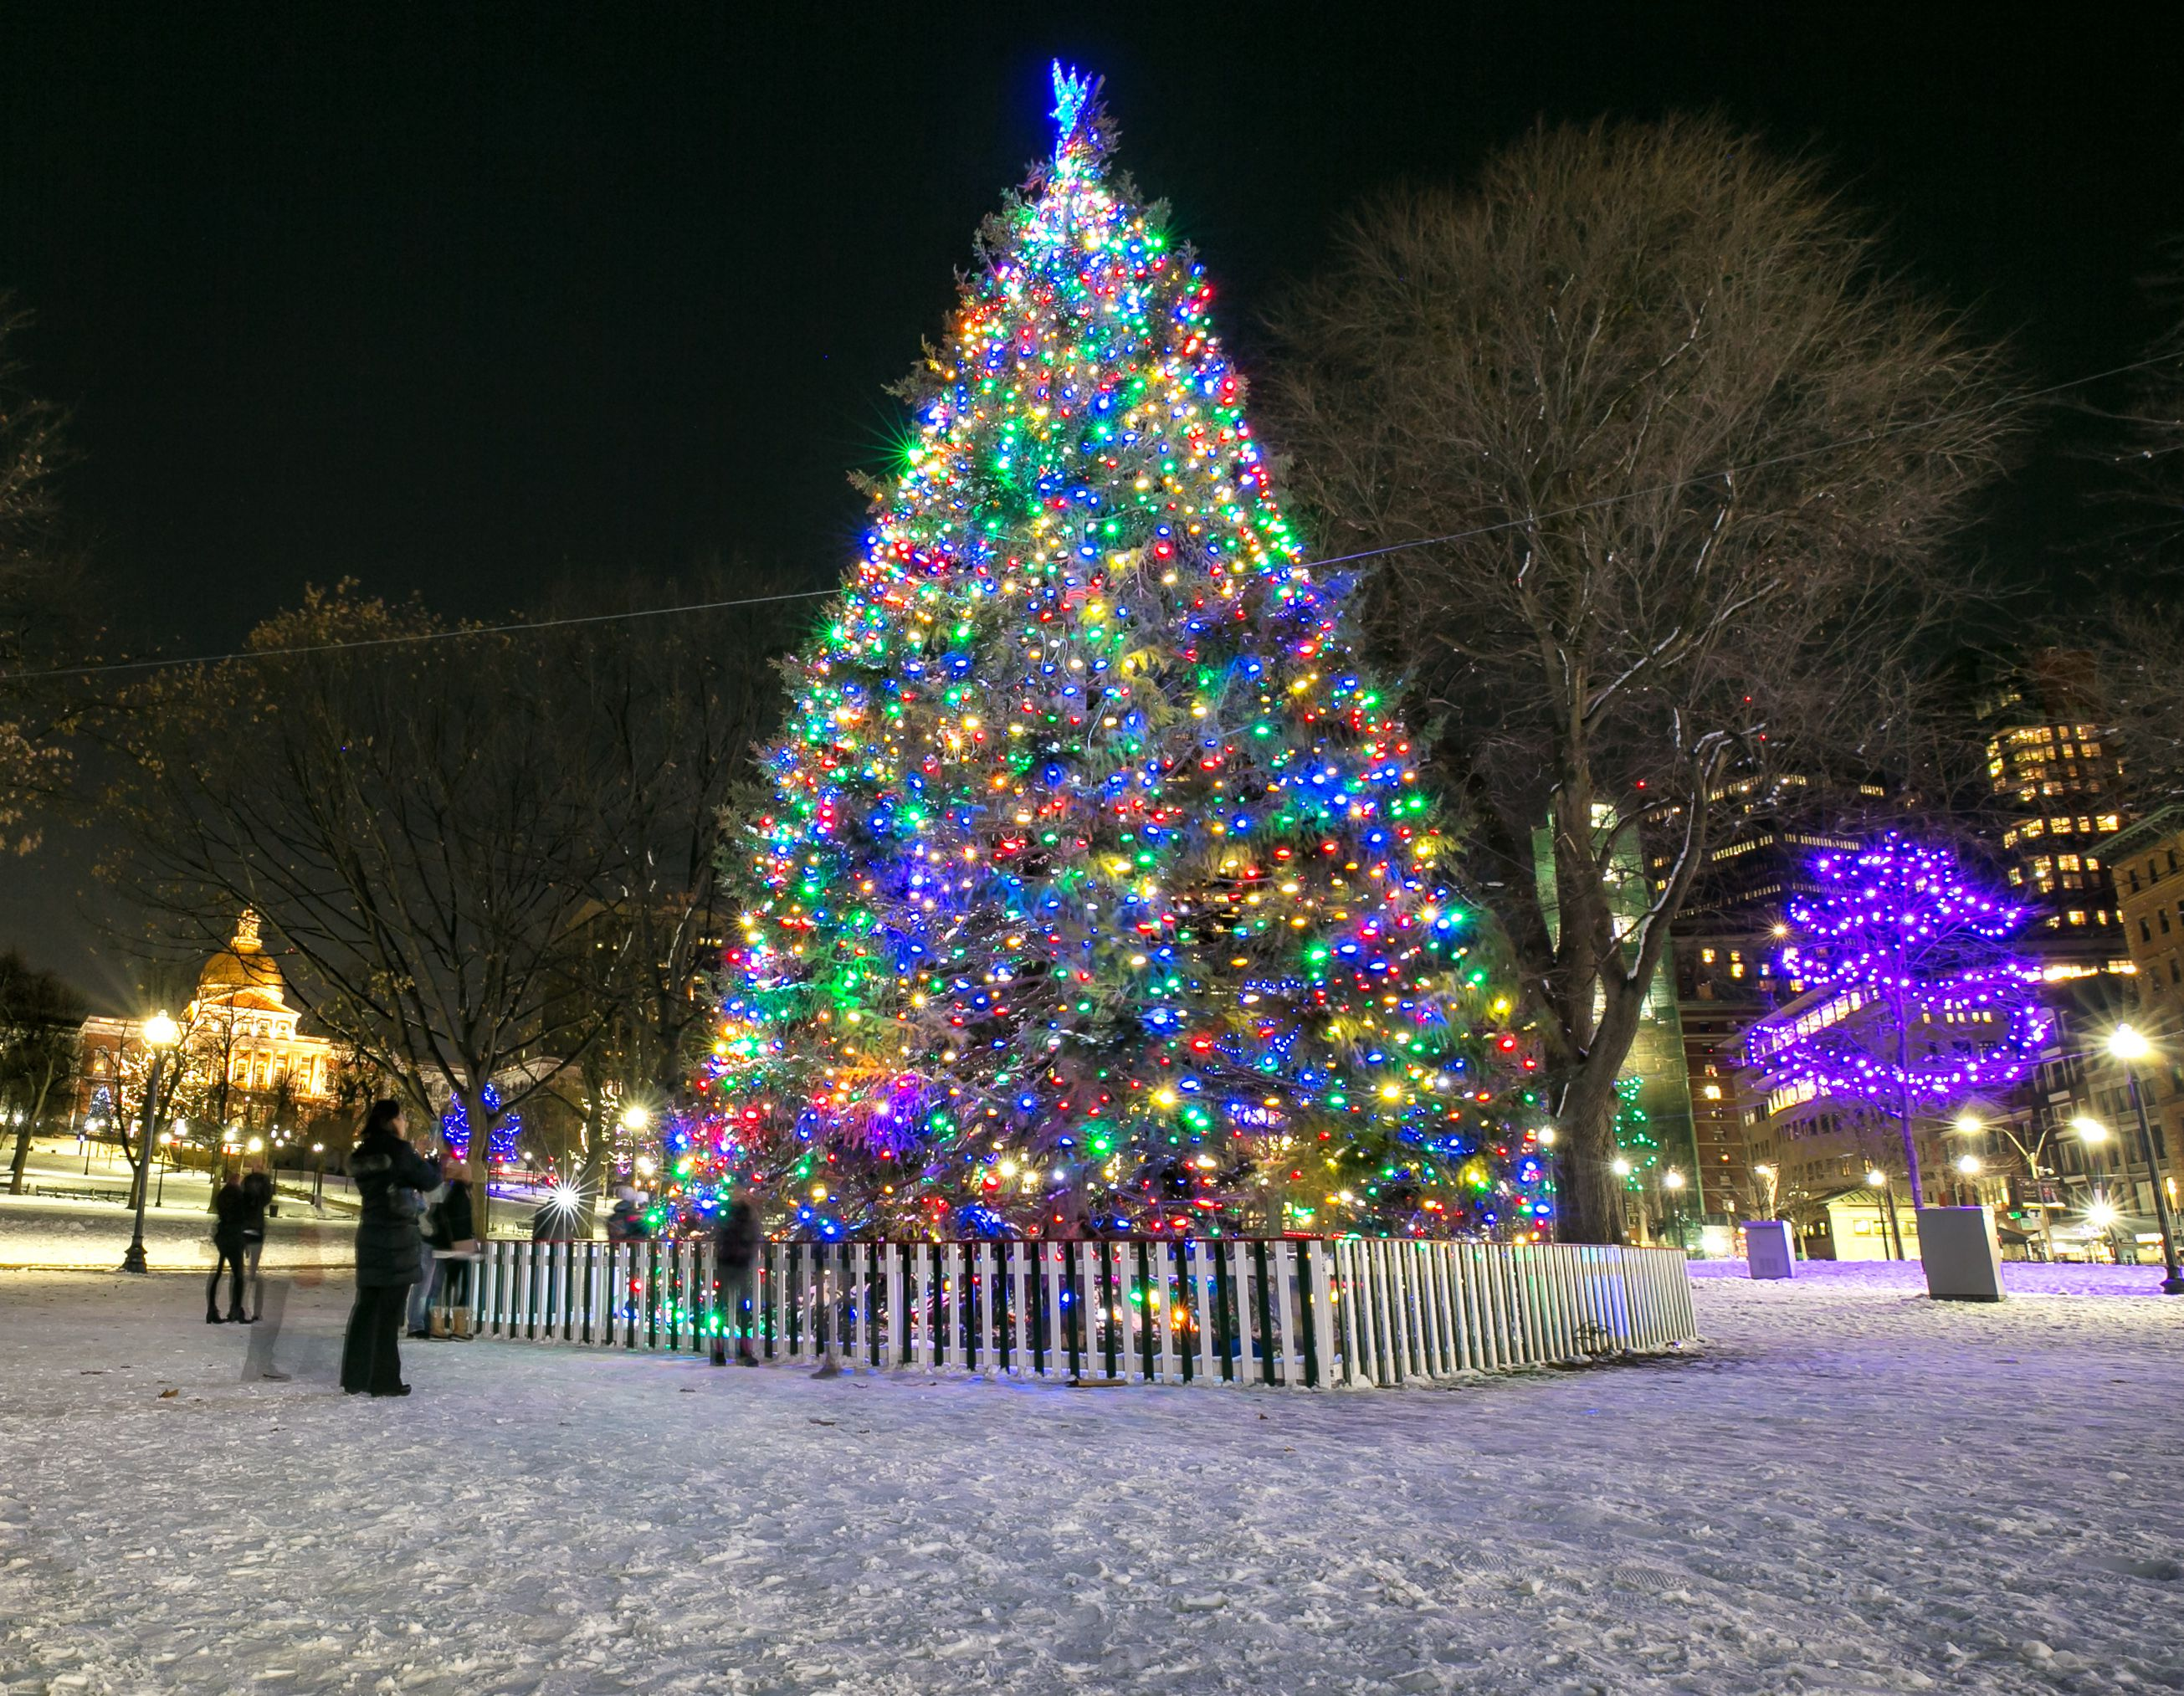 Best Christmas Trees.The Best Christmas Trees And Displays To See In Boston